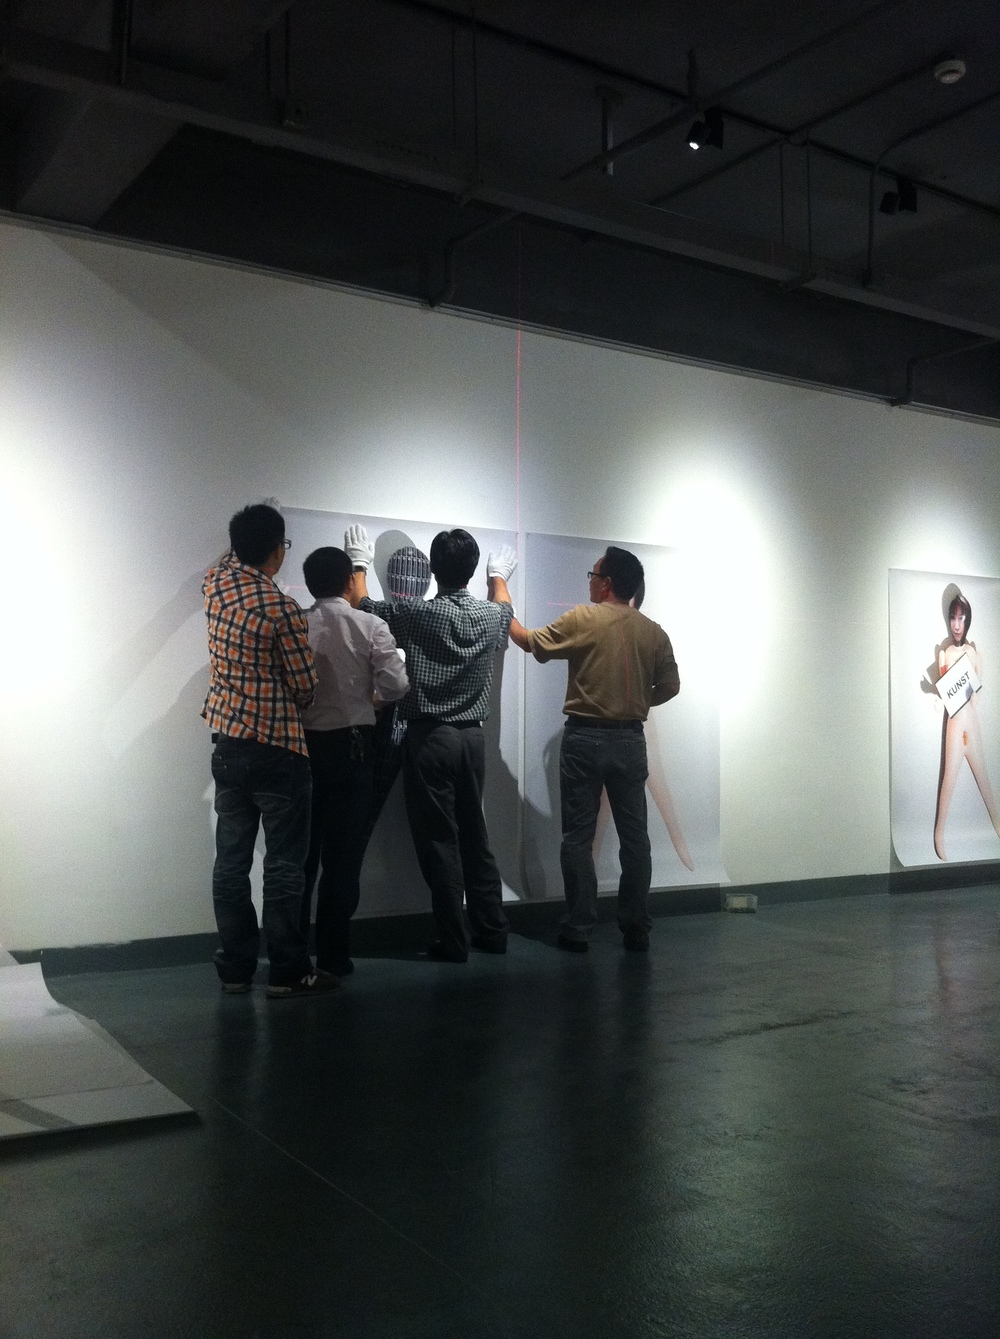 """art gang bang"", Tongqi art center, Shanghai, China, 2012."